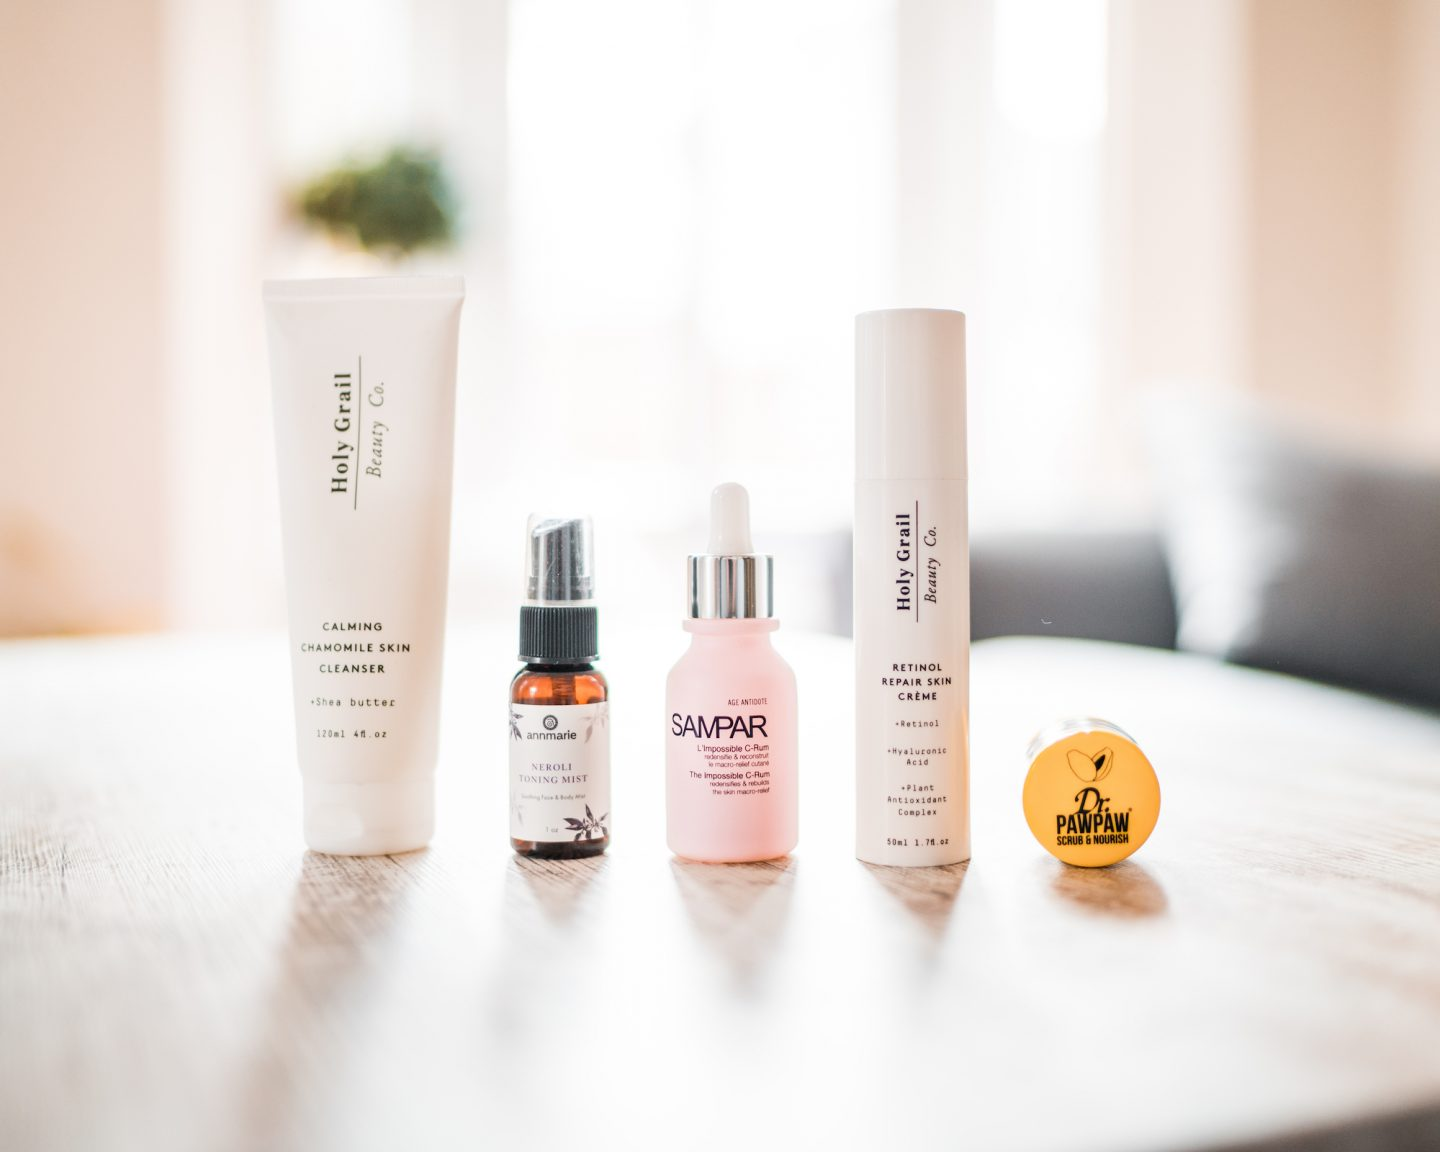 From basic to upgraded: my skincare routine story.